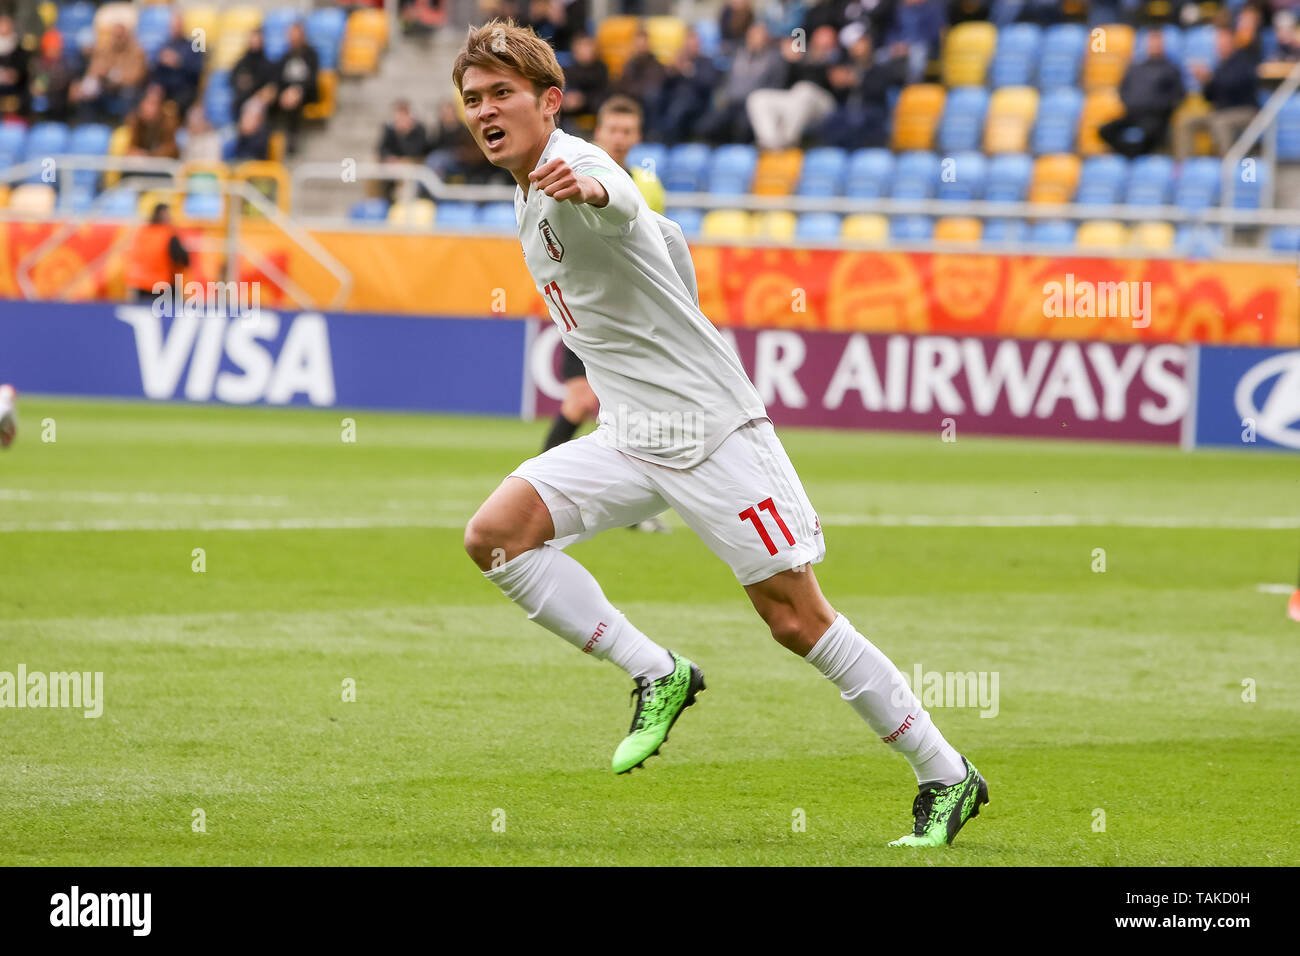 Gdynia Stadium, Gdynia, Poland - 26th May, 2019: Kyosuke Tagawa from Japan seen celebrating after scoring a goal during FIFA U-20 World Cup match between Mexico and Japan (GROUP B) in Gdynia. (Final score; Mexico 0:3 Japan) - Stock Image